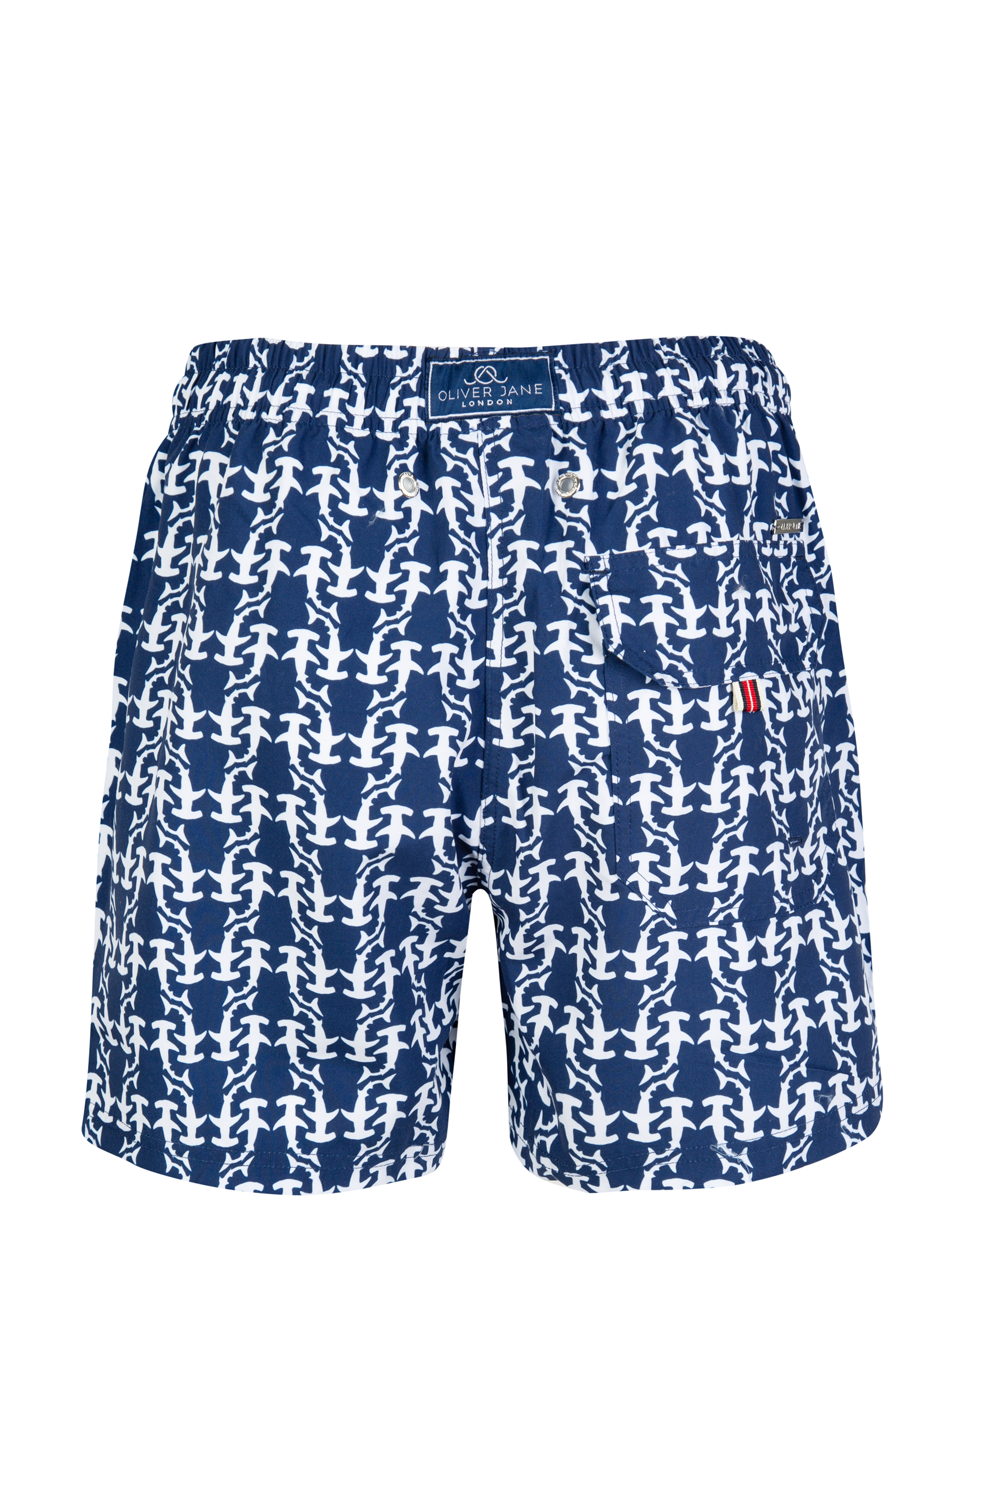 The Navy Hammerhead Shark Swim Shorts